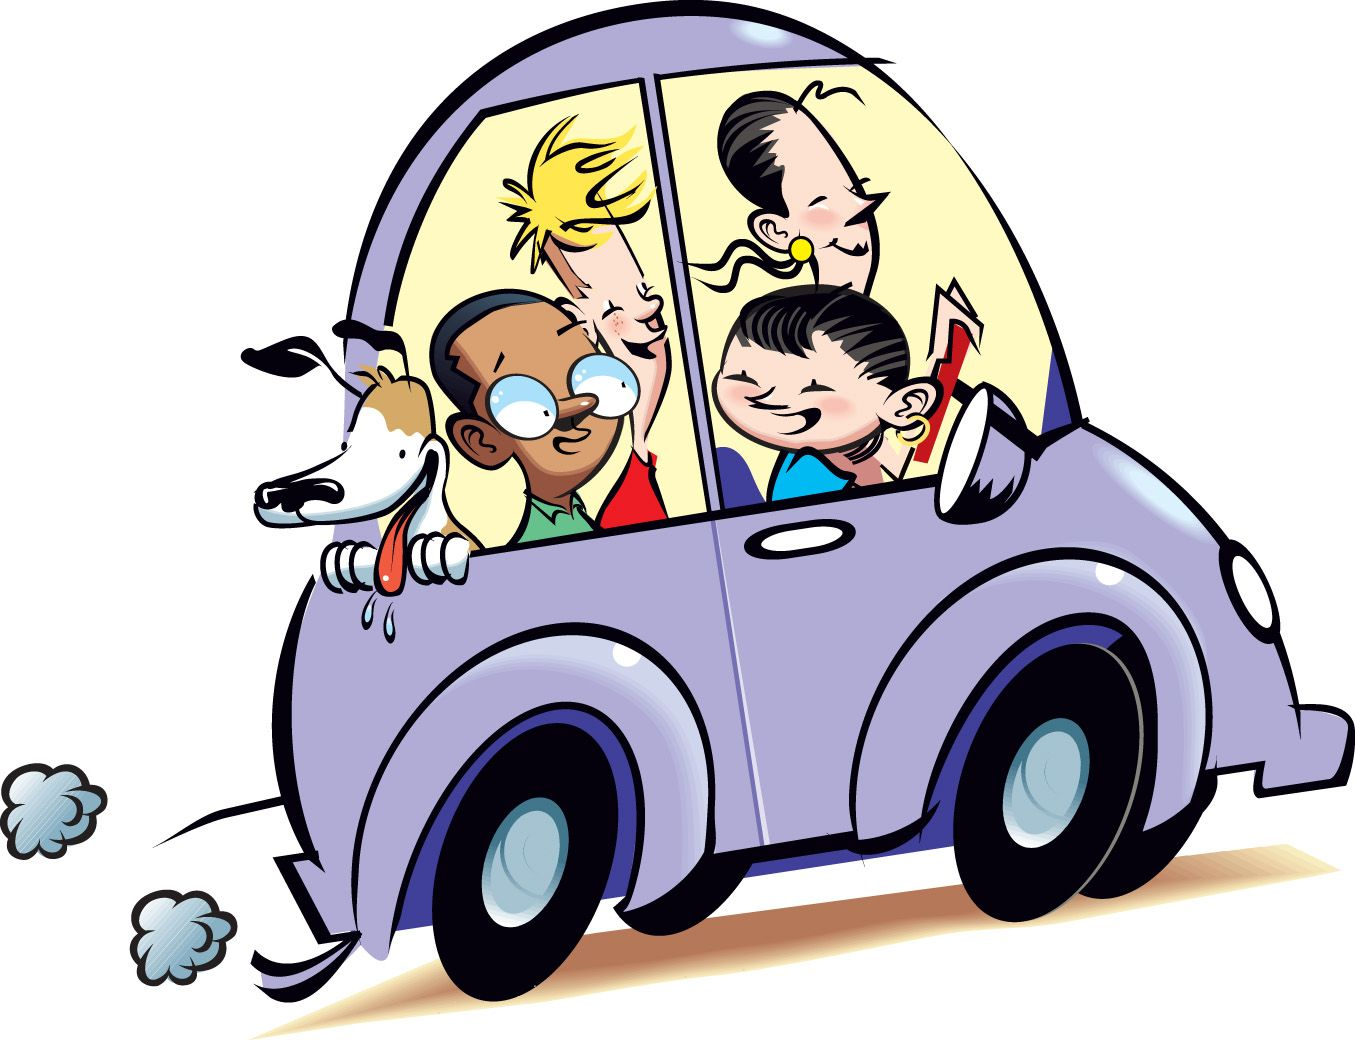 Sing in car clipart jpg royalty free Family Car Clipart | Clipart Panda - Free Clipart Images ... jpg royalty free